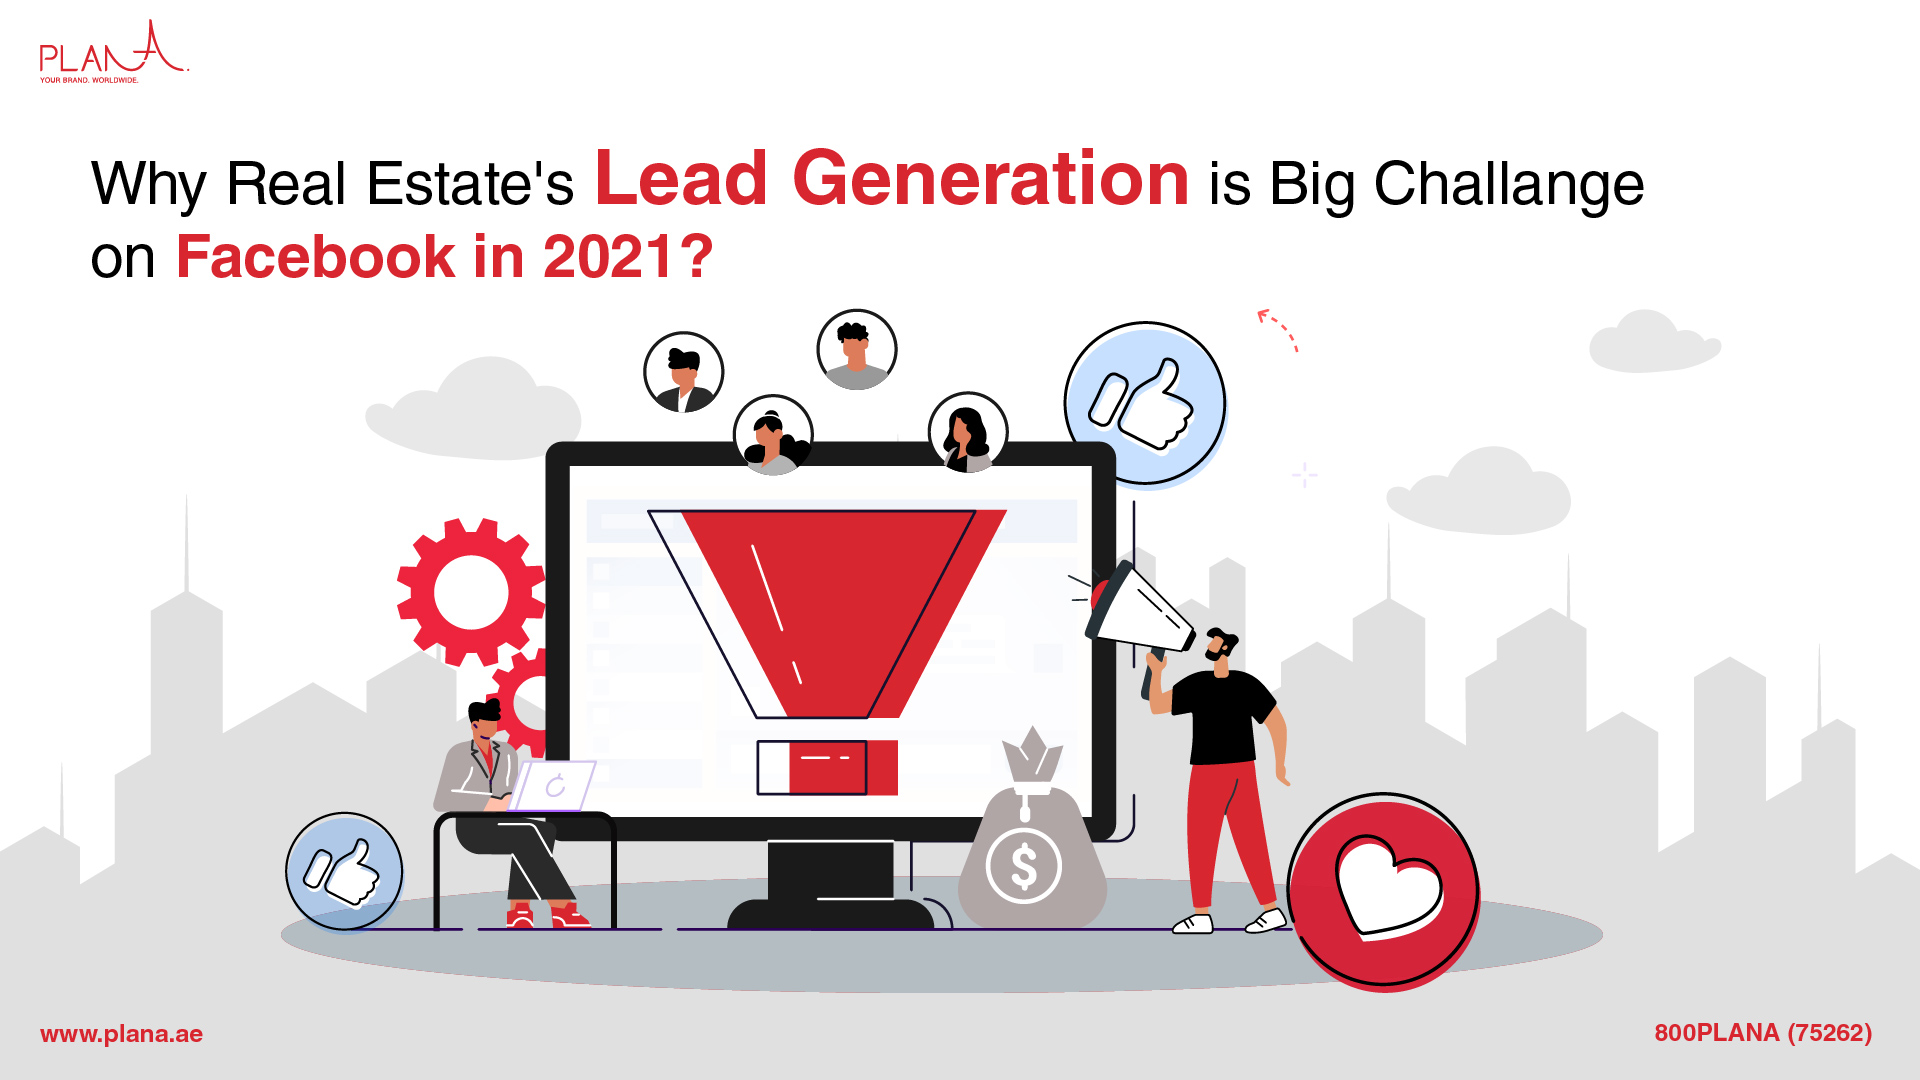 Why Real Estate's Lead Generation is Big Challange on Facebook in 2021?